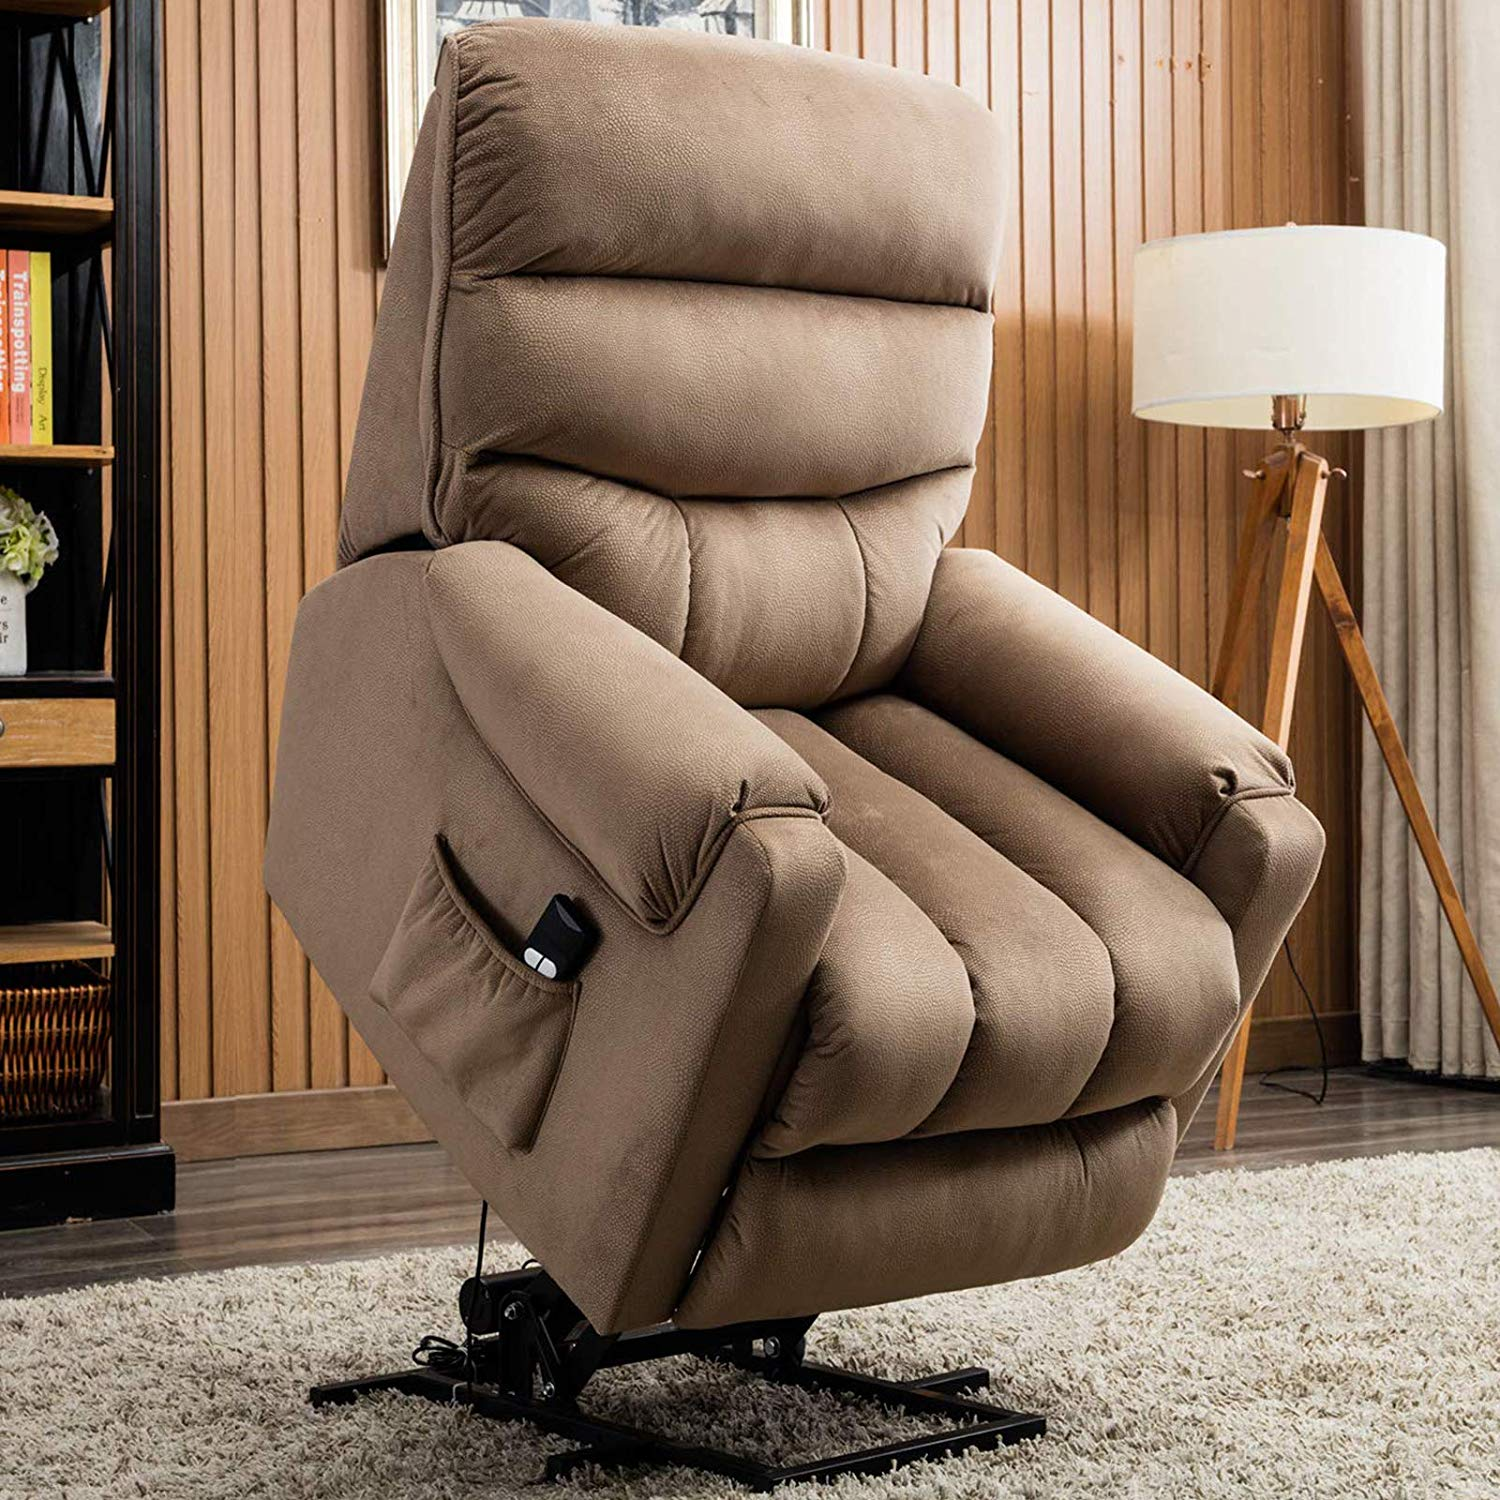 A brown lift chair in the full upright position.